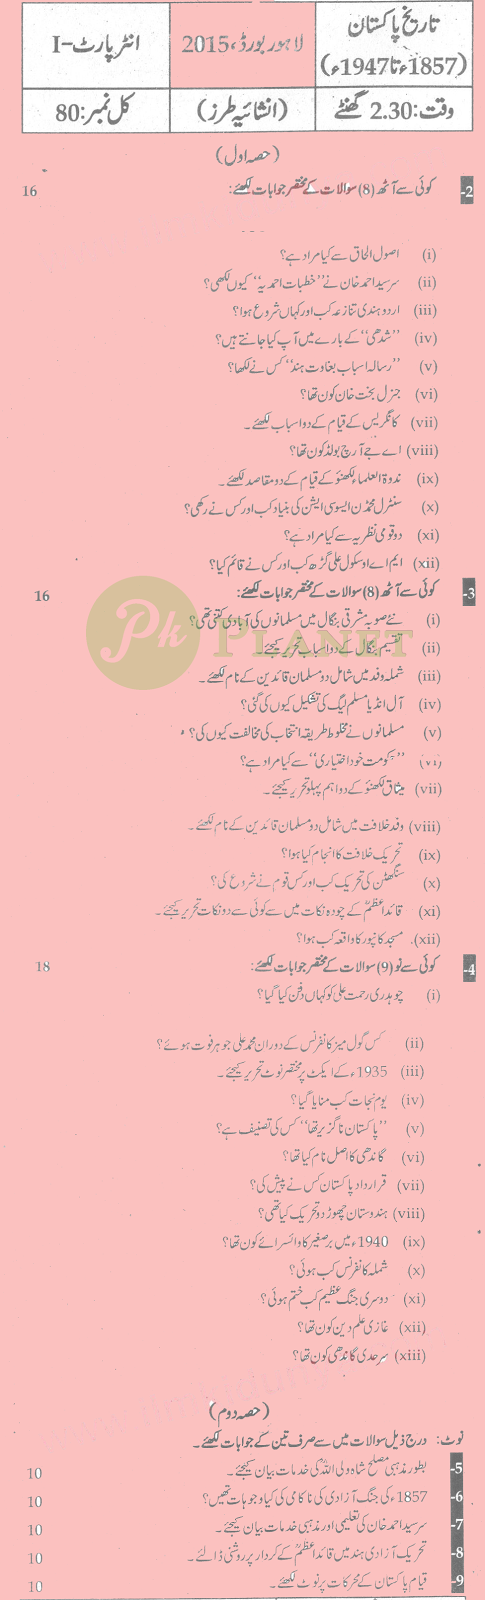 Intermediate Part 1 Past Papers Lahore Board History of Pakistan